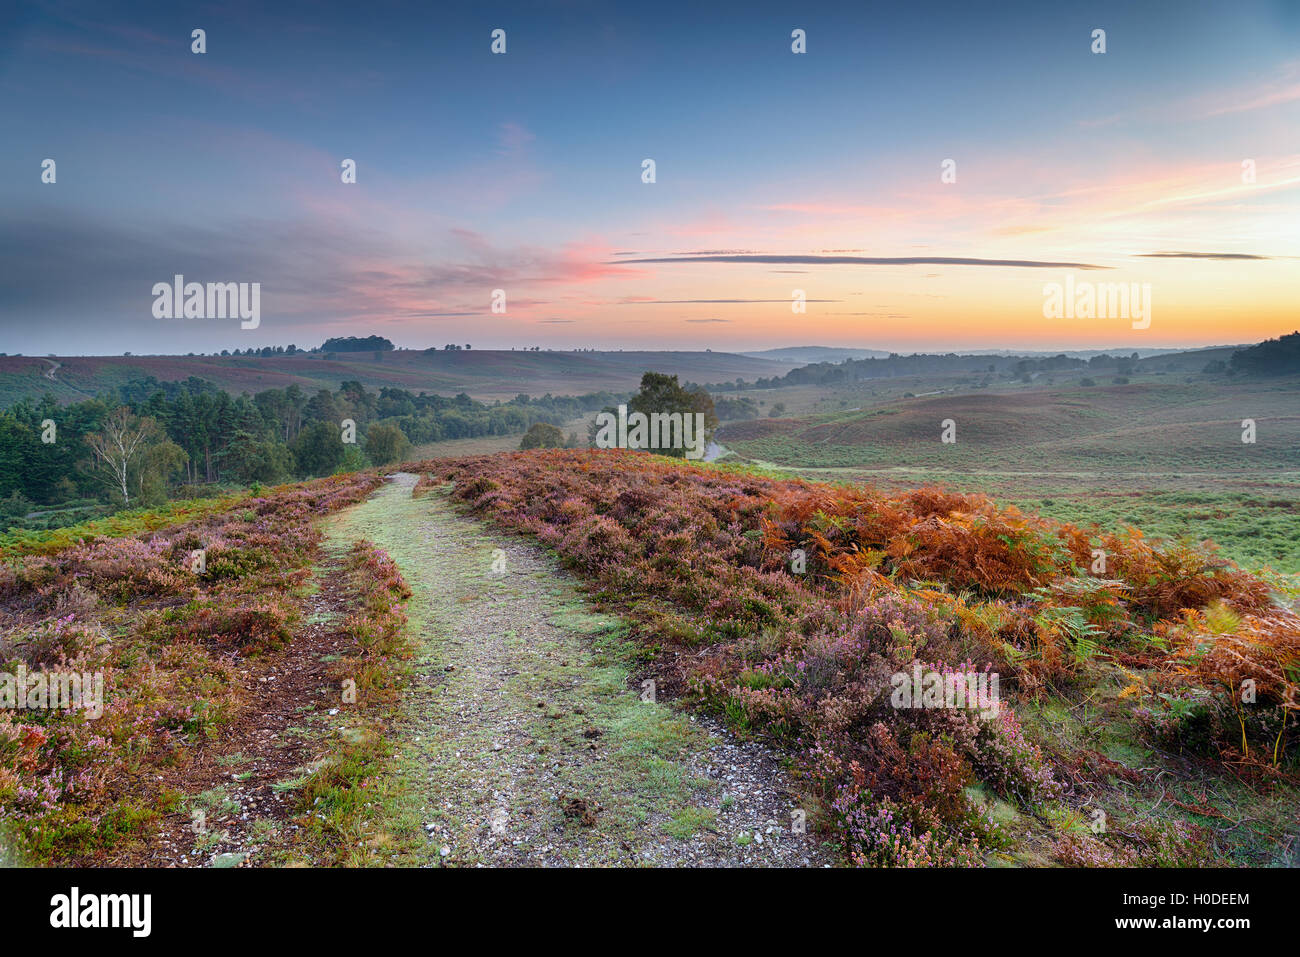 Sunrise over Rockford Common in the New Forest National Park in Hampshire - Stock Image